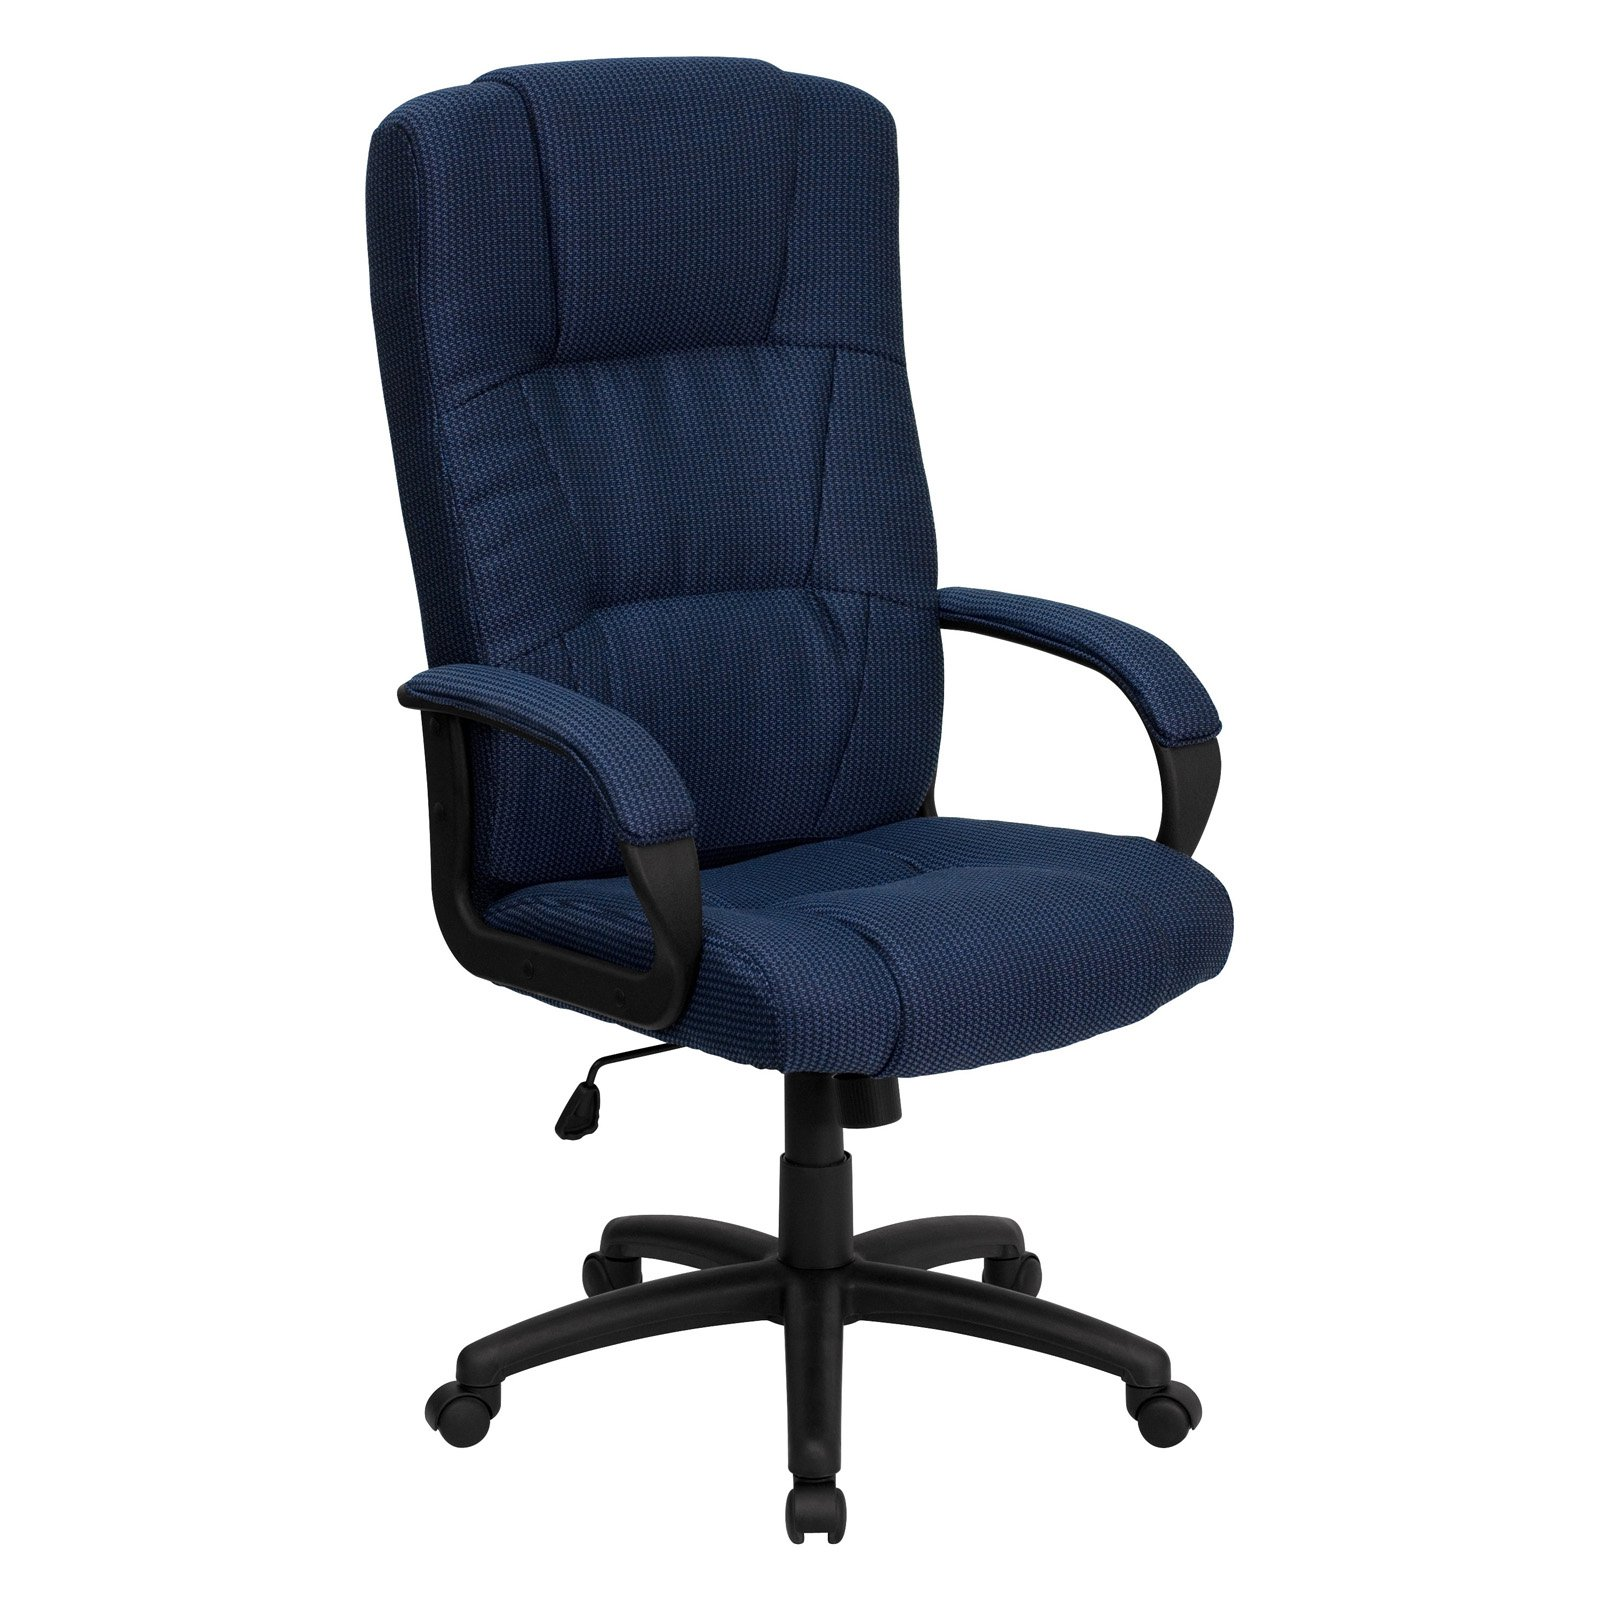 High Back Executive Fabric Office Chair, Multiple Colors